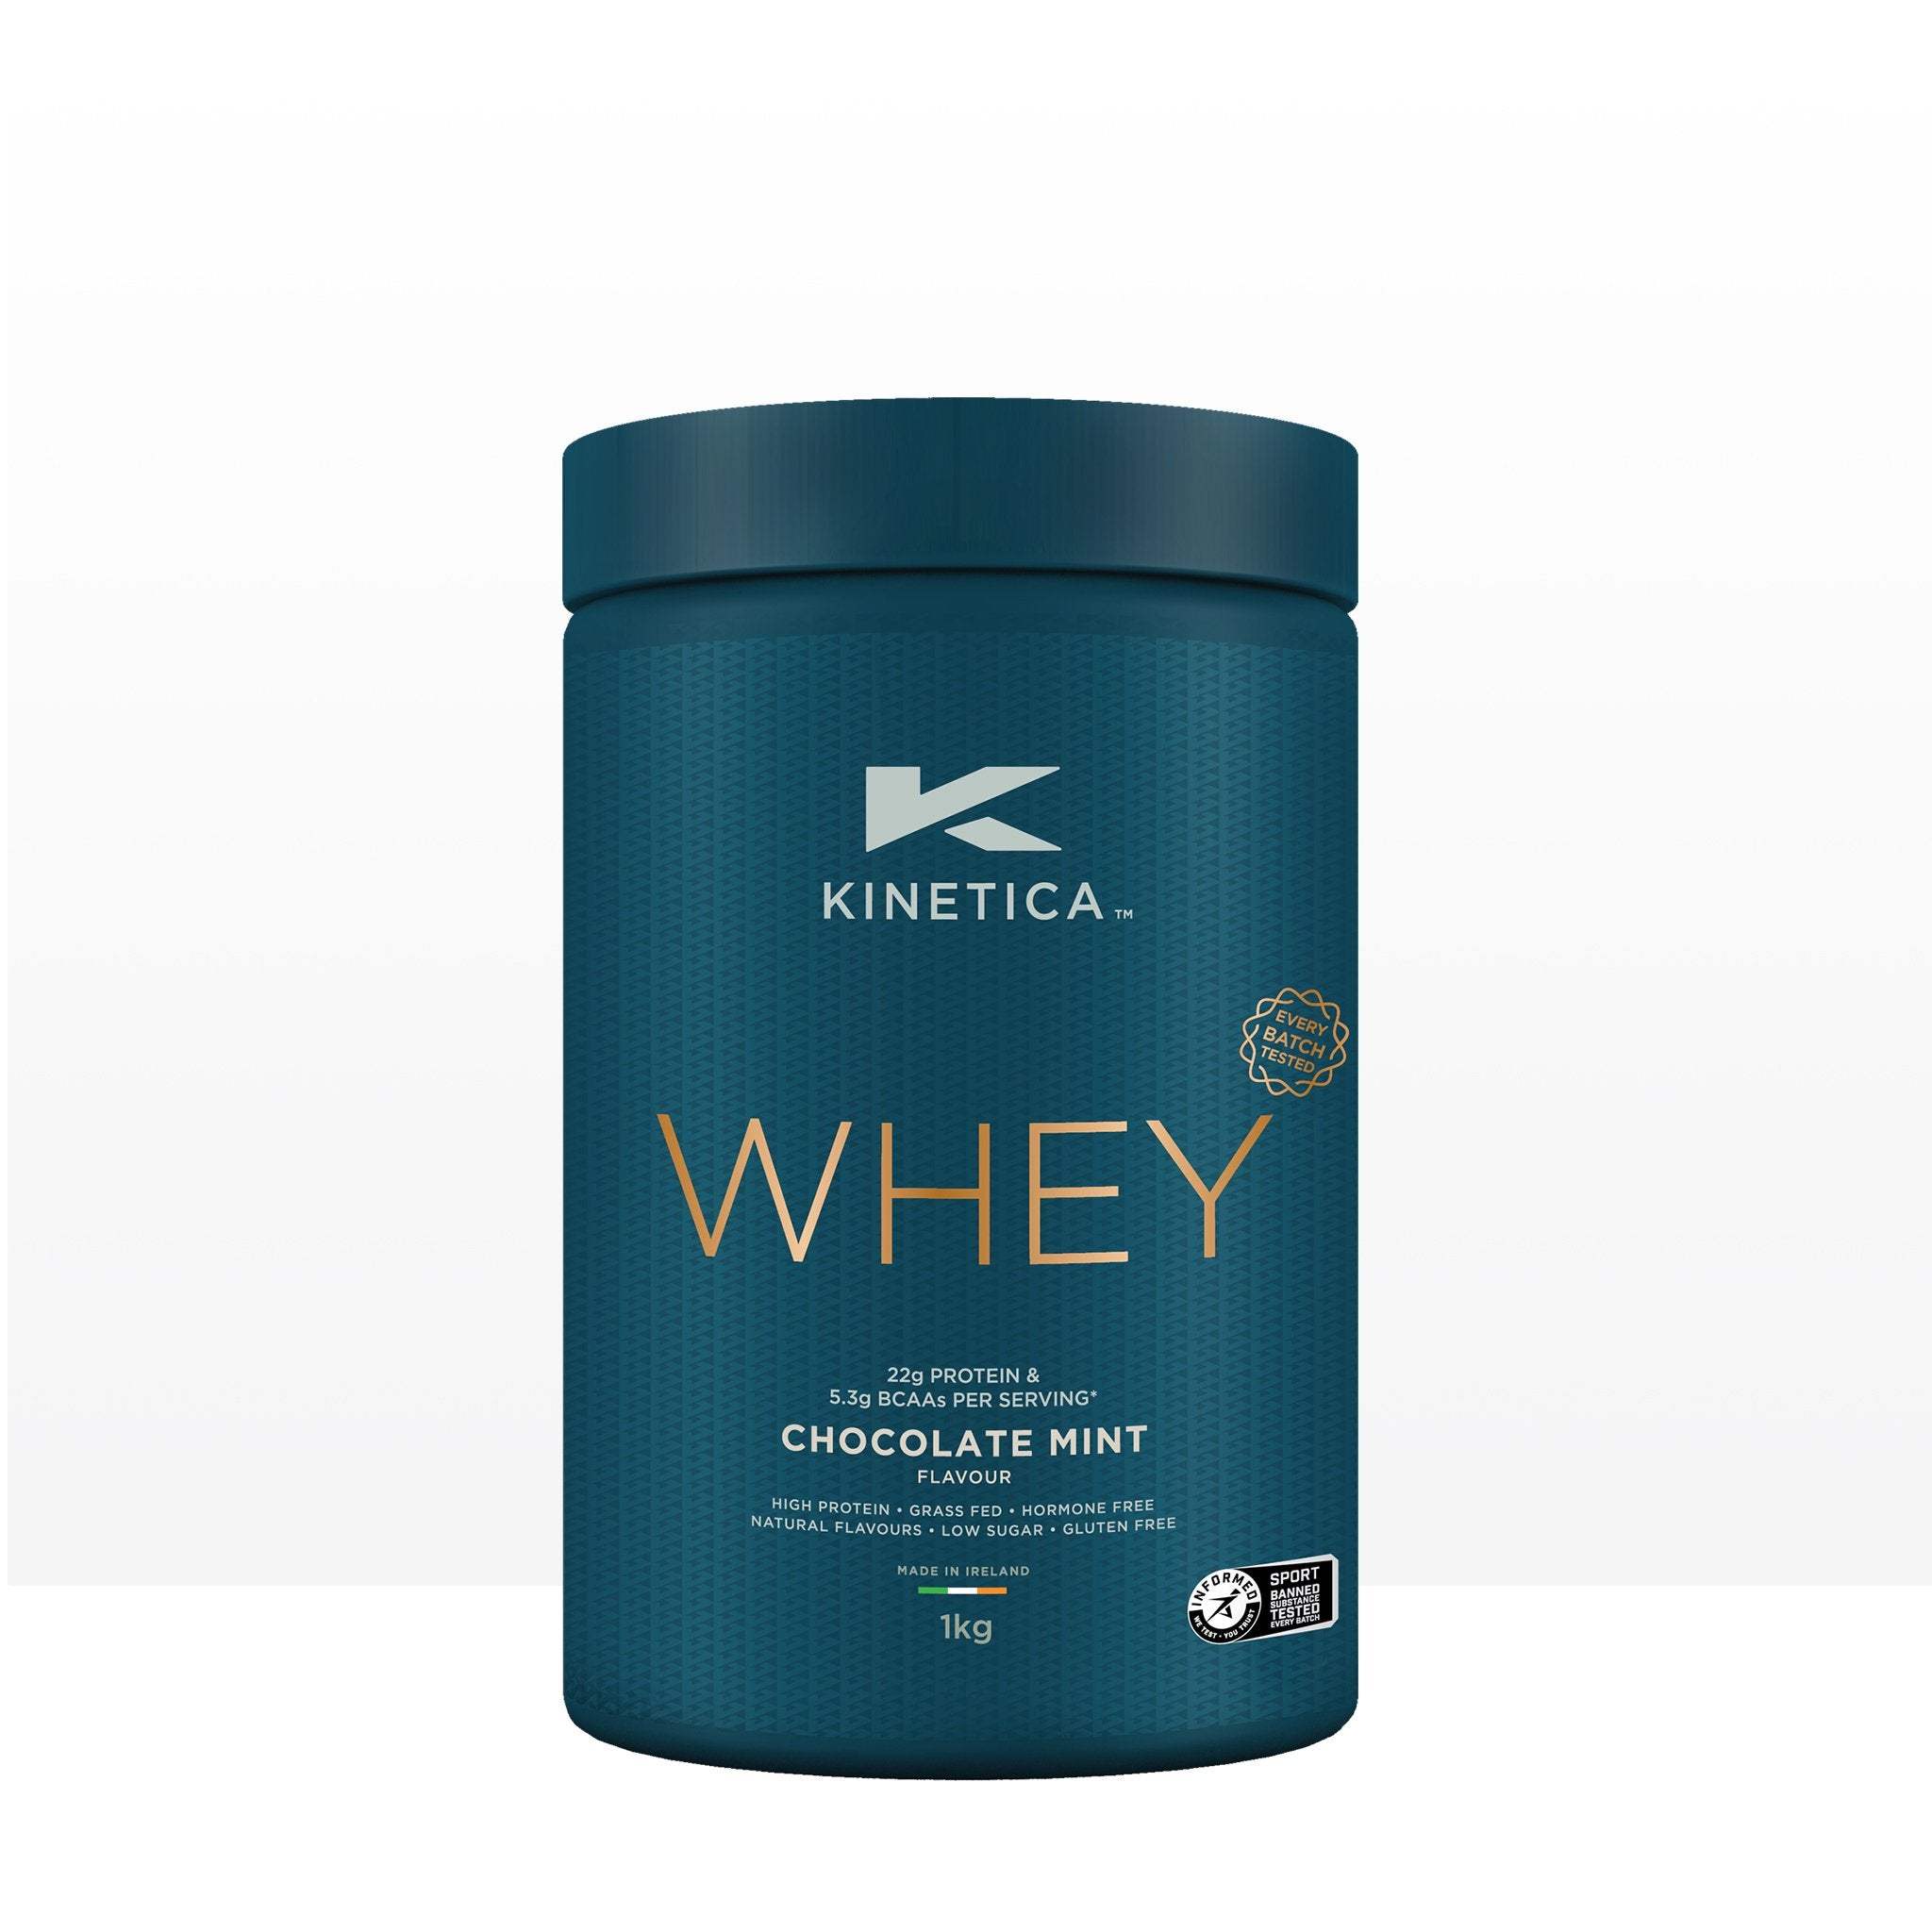 Whey Protein Chocolate Mint 1kg